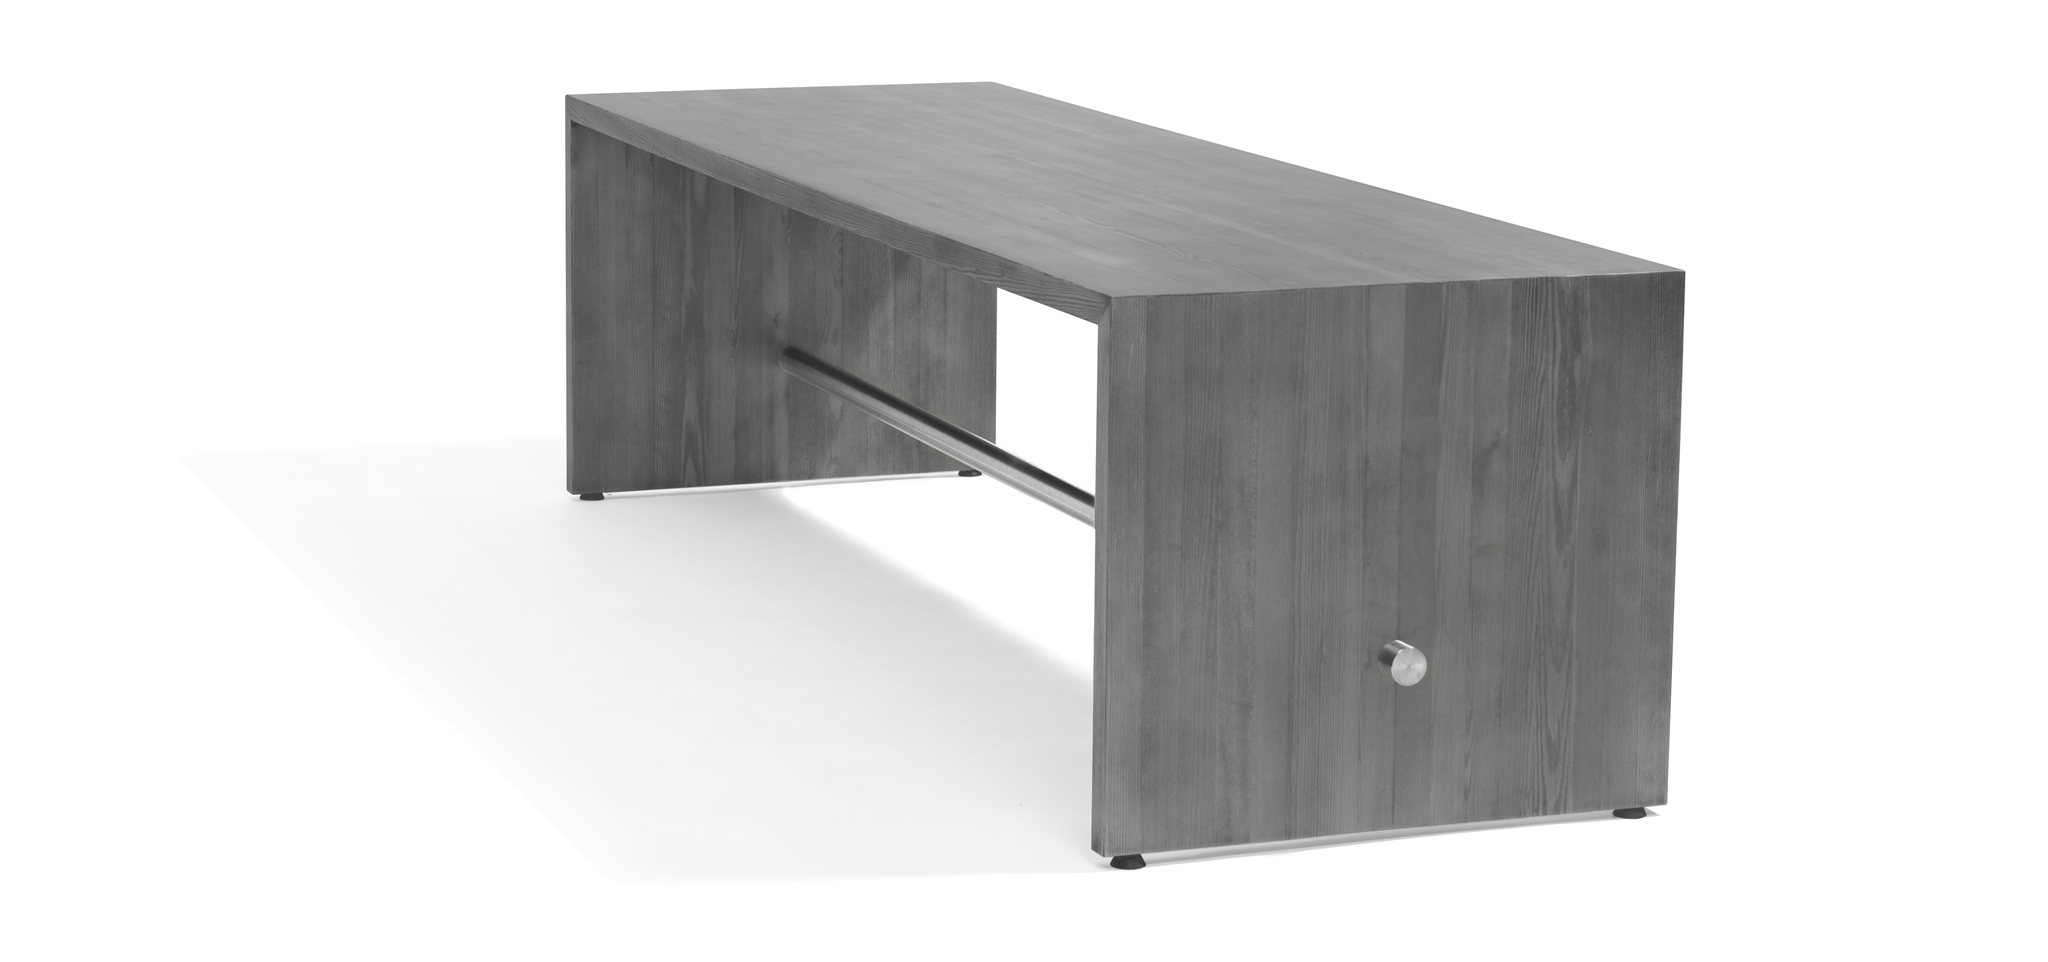 ... Bar Table And Bench In Solid Wood, High Pressure Laminate On Plywood,  Painted MDF Or Valchromat. Stainless Steel Foot Rest. Ping Pong Can Be  Customized ...